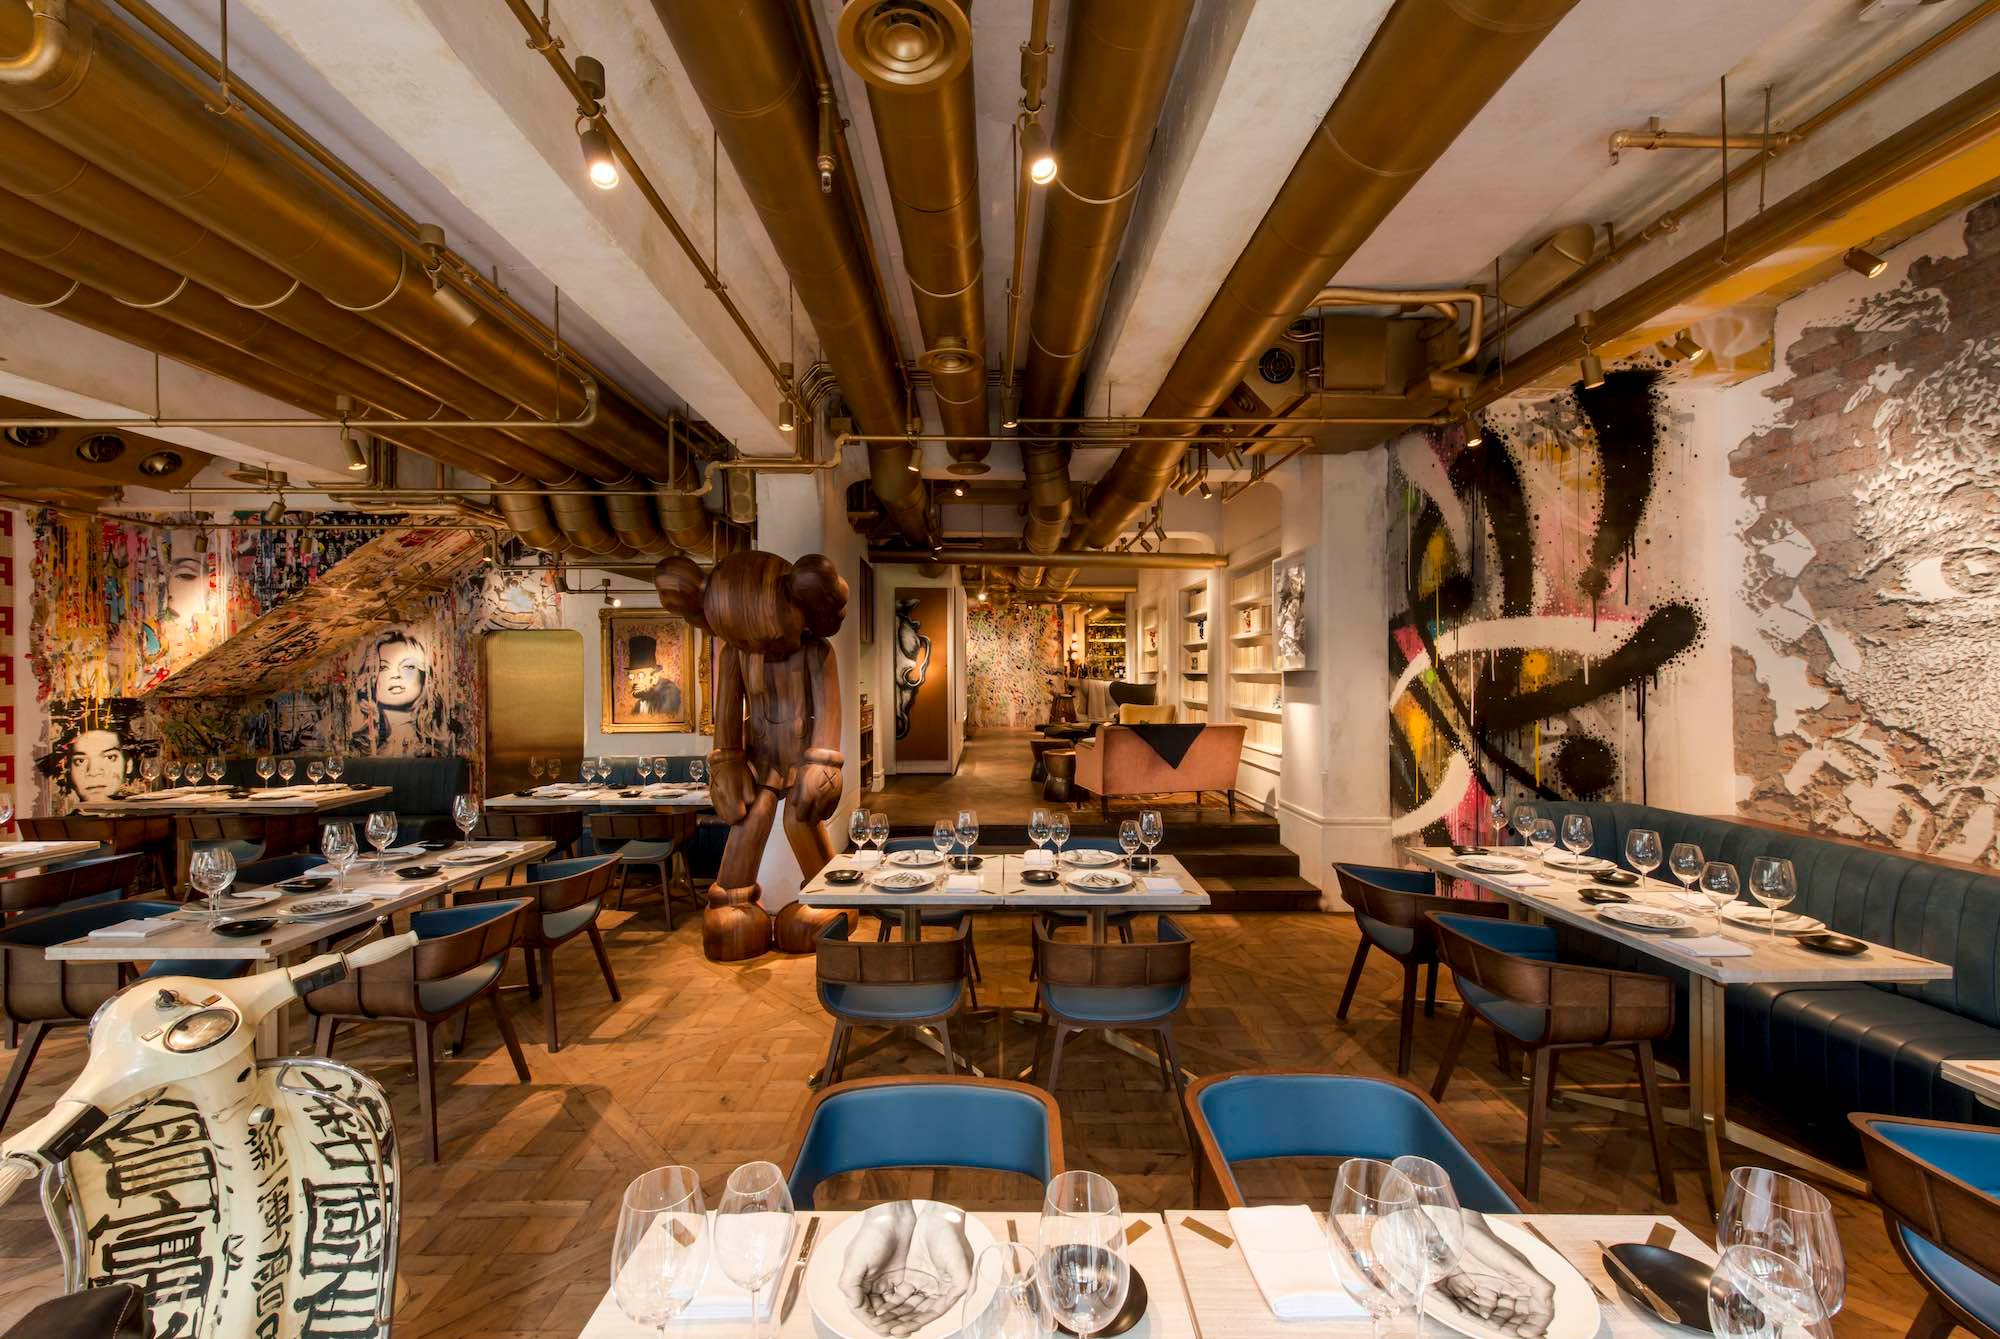 Tendencias en el dise o de bares caf s y restaurantes for Interiorismo y decoracion